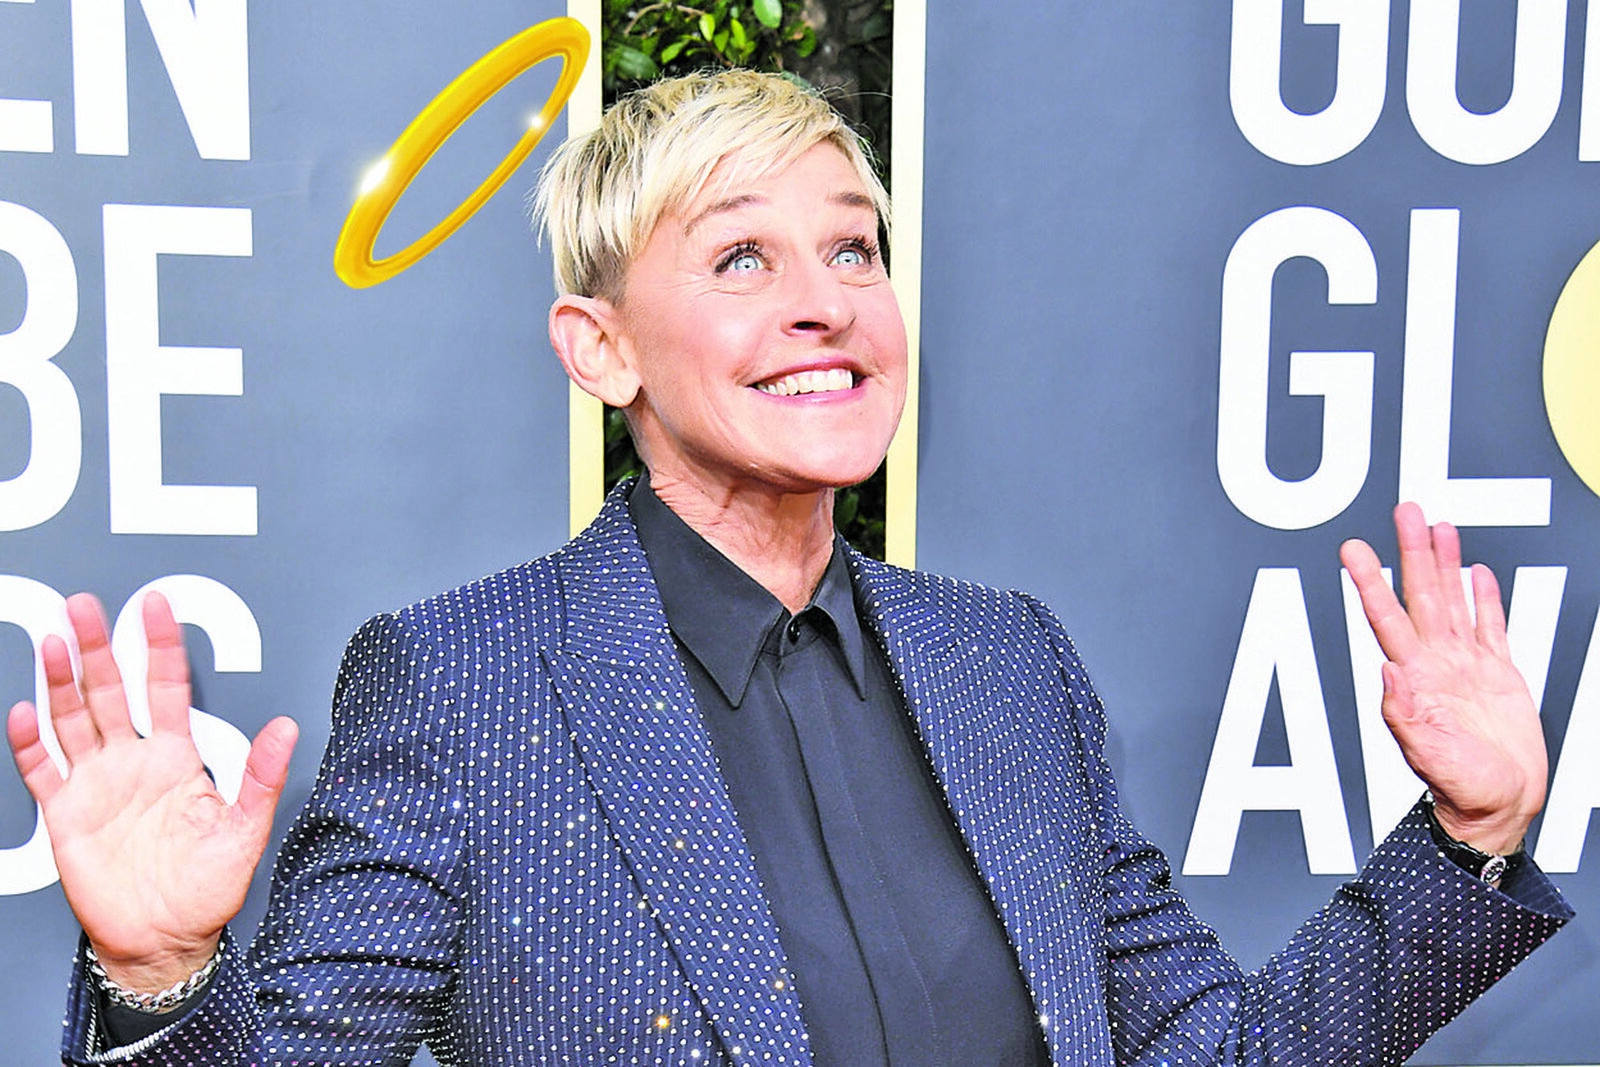 'The Ellen DeGeneres Show' continues to be under fire for both Ellen's behavior and her staff. These allegations prove it's not just Ellen being mean.